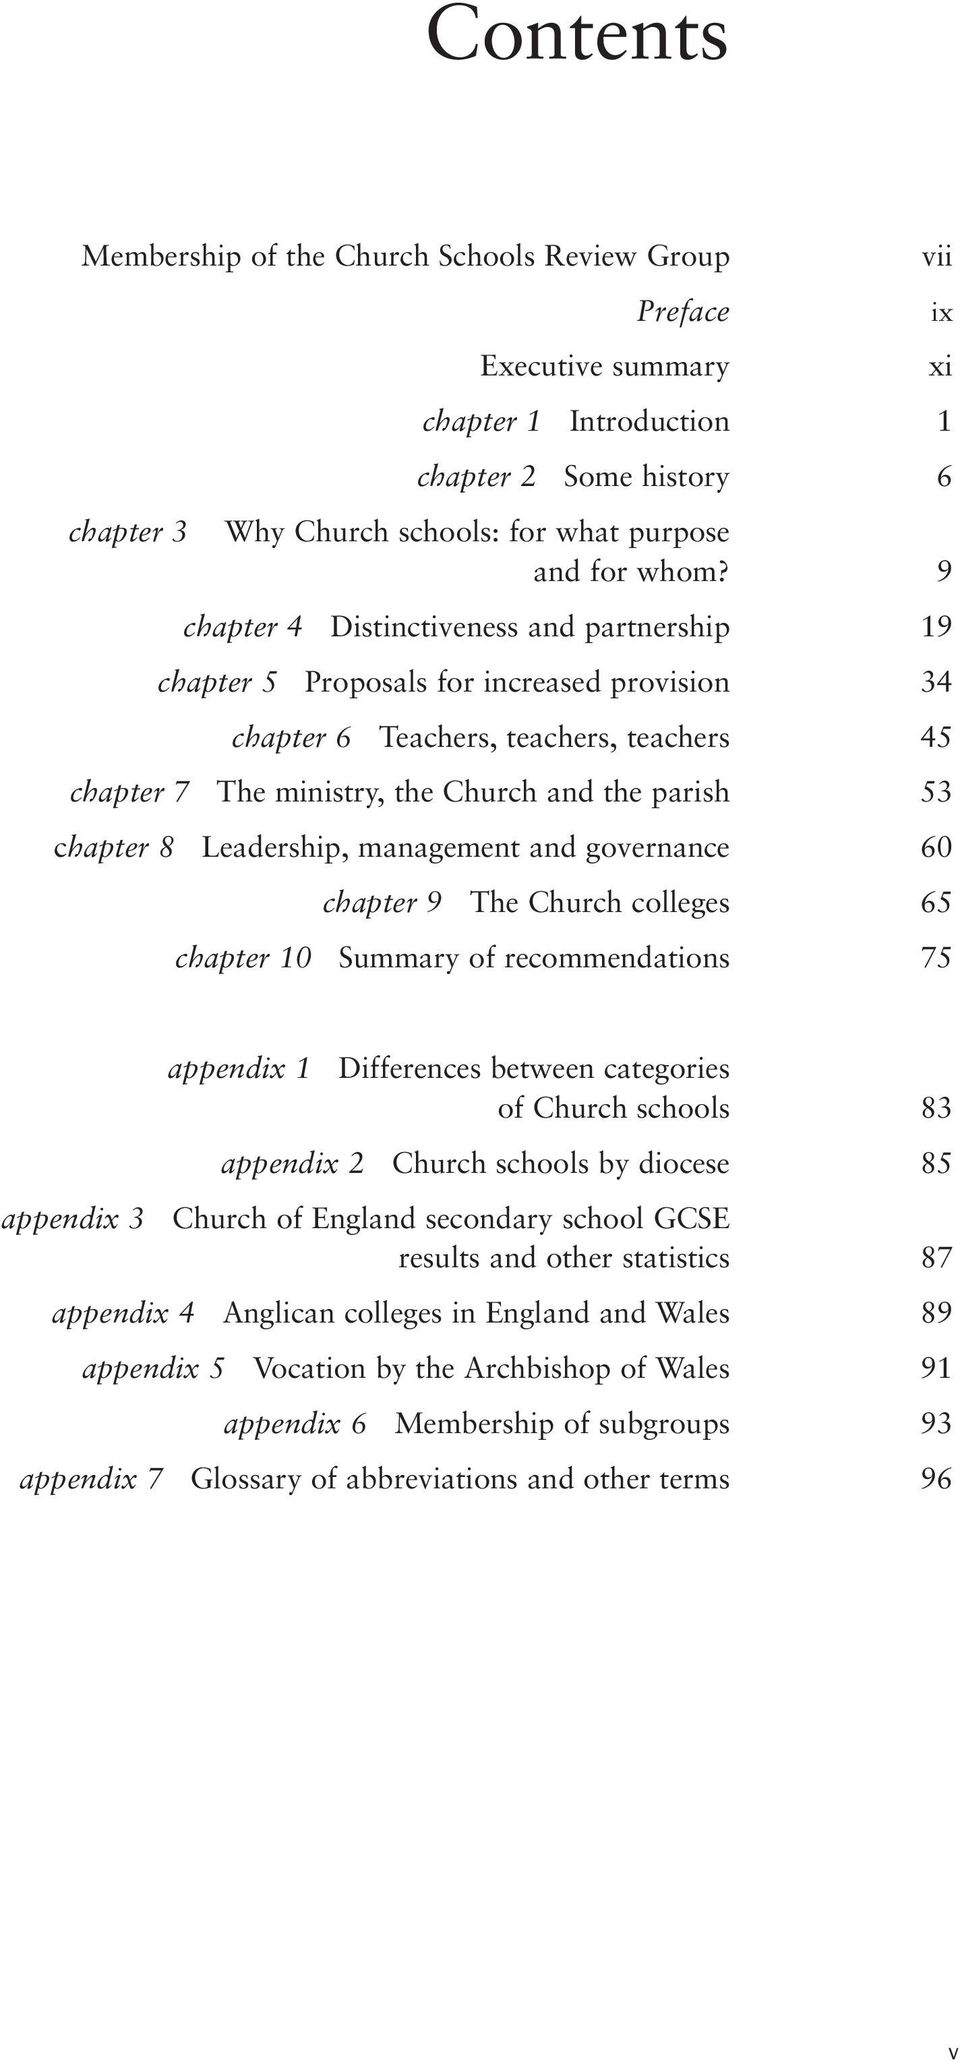 Leadership, management and governance 60 chapter 9 The Church colleges 65 chapter 10 Summary of recommendations 75 ix xi appendix 3 appendix 1 Differences between categories of Church schools 83